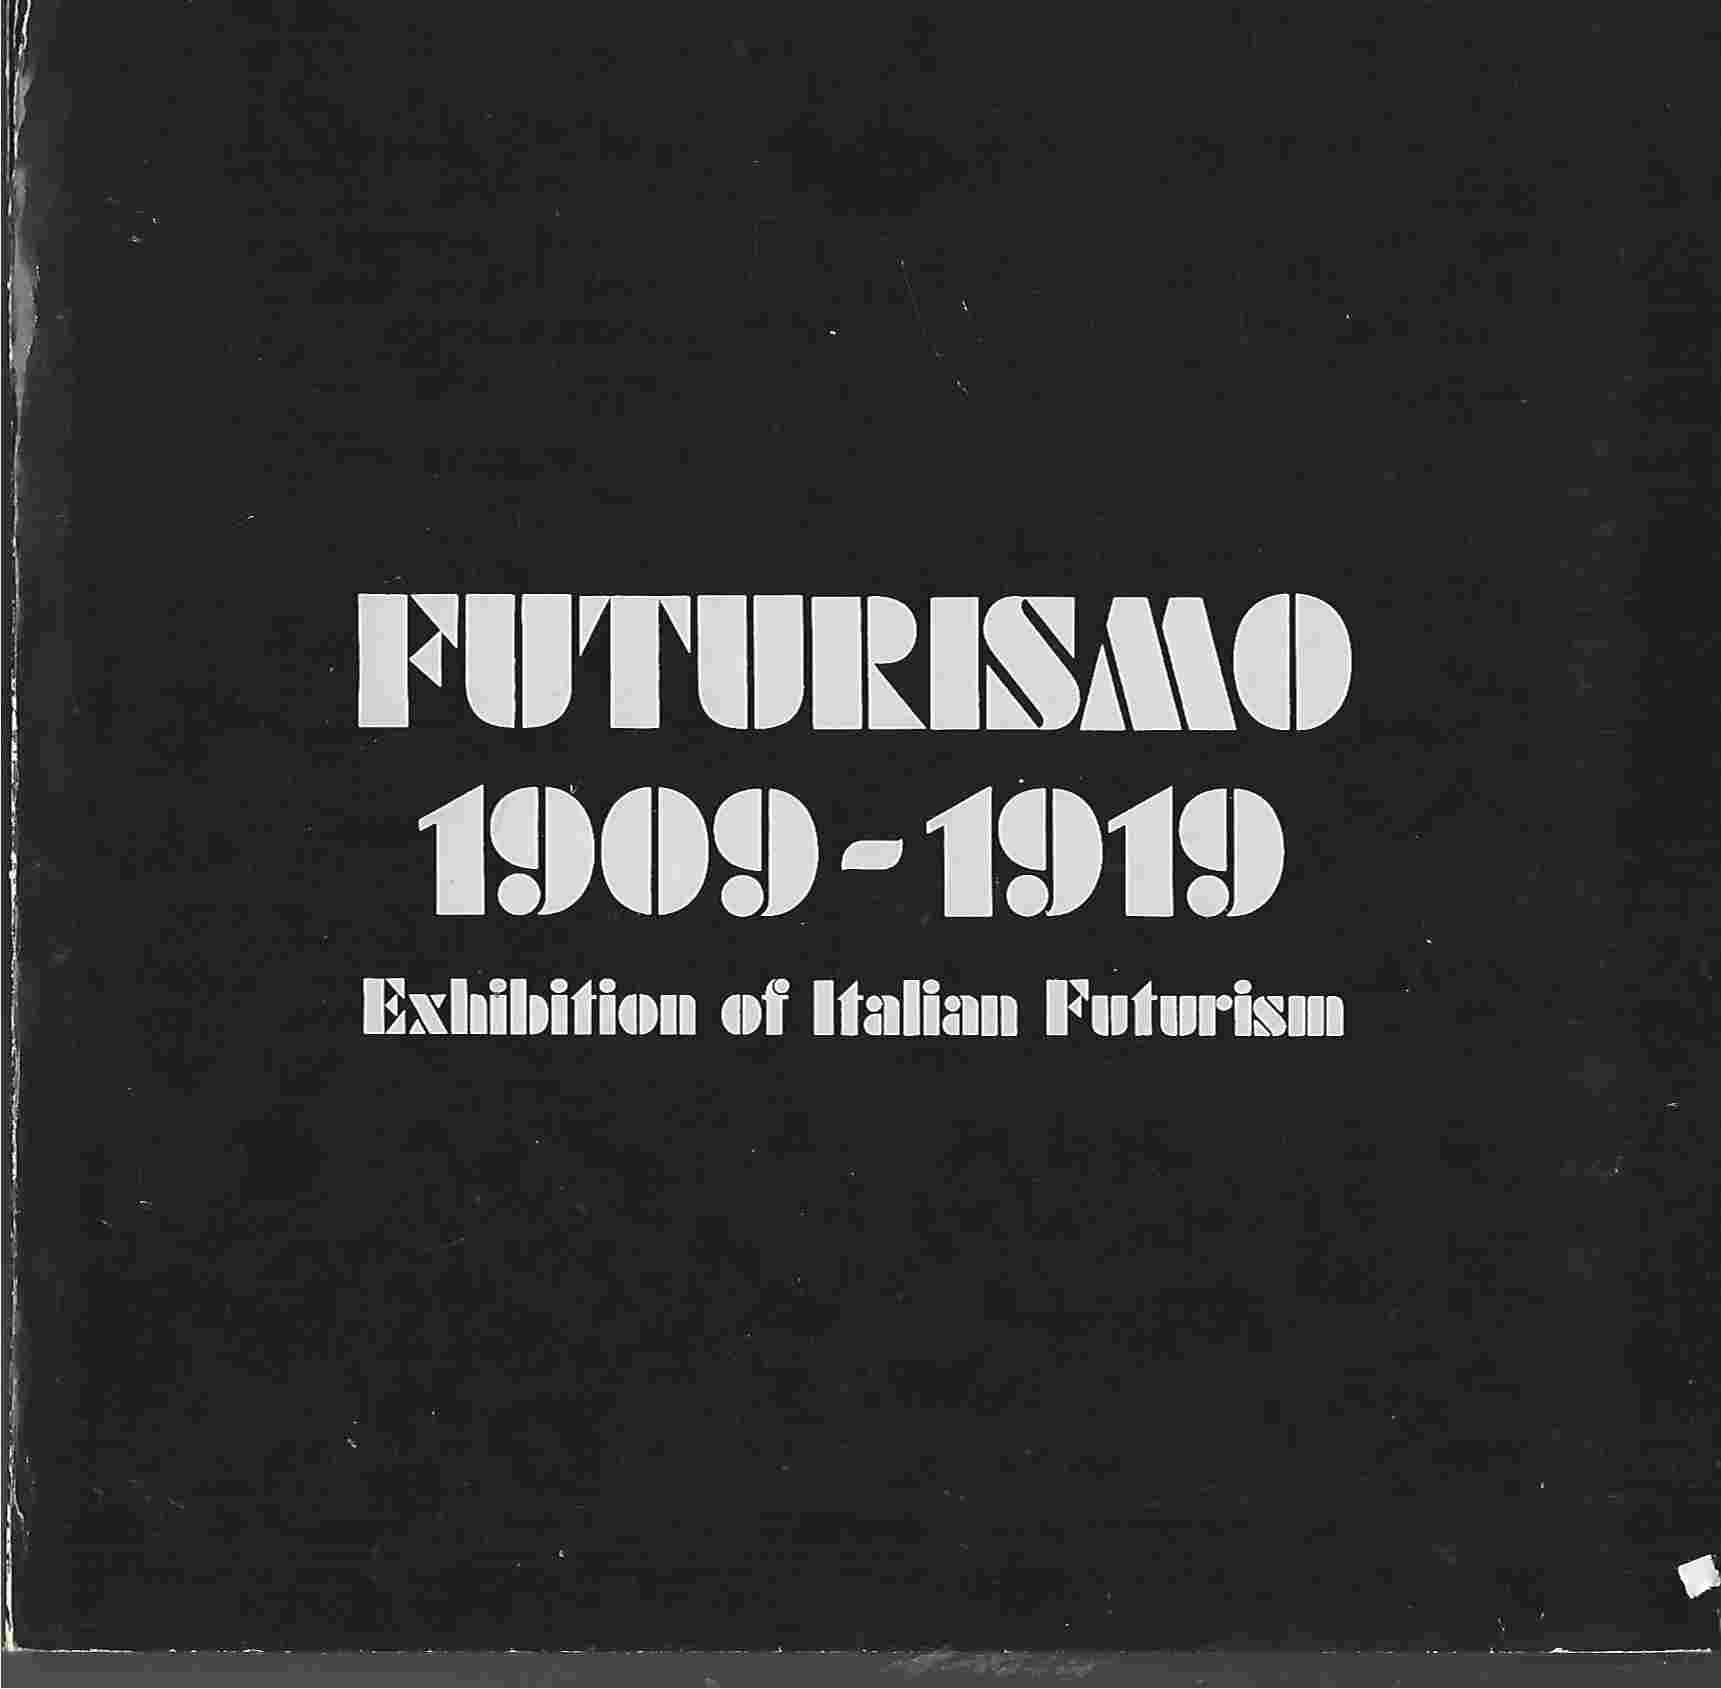 Image for Futurismo 1909-1919, Exhibition of Italian Futurism,